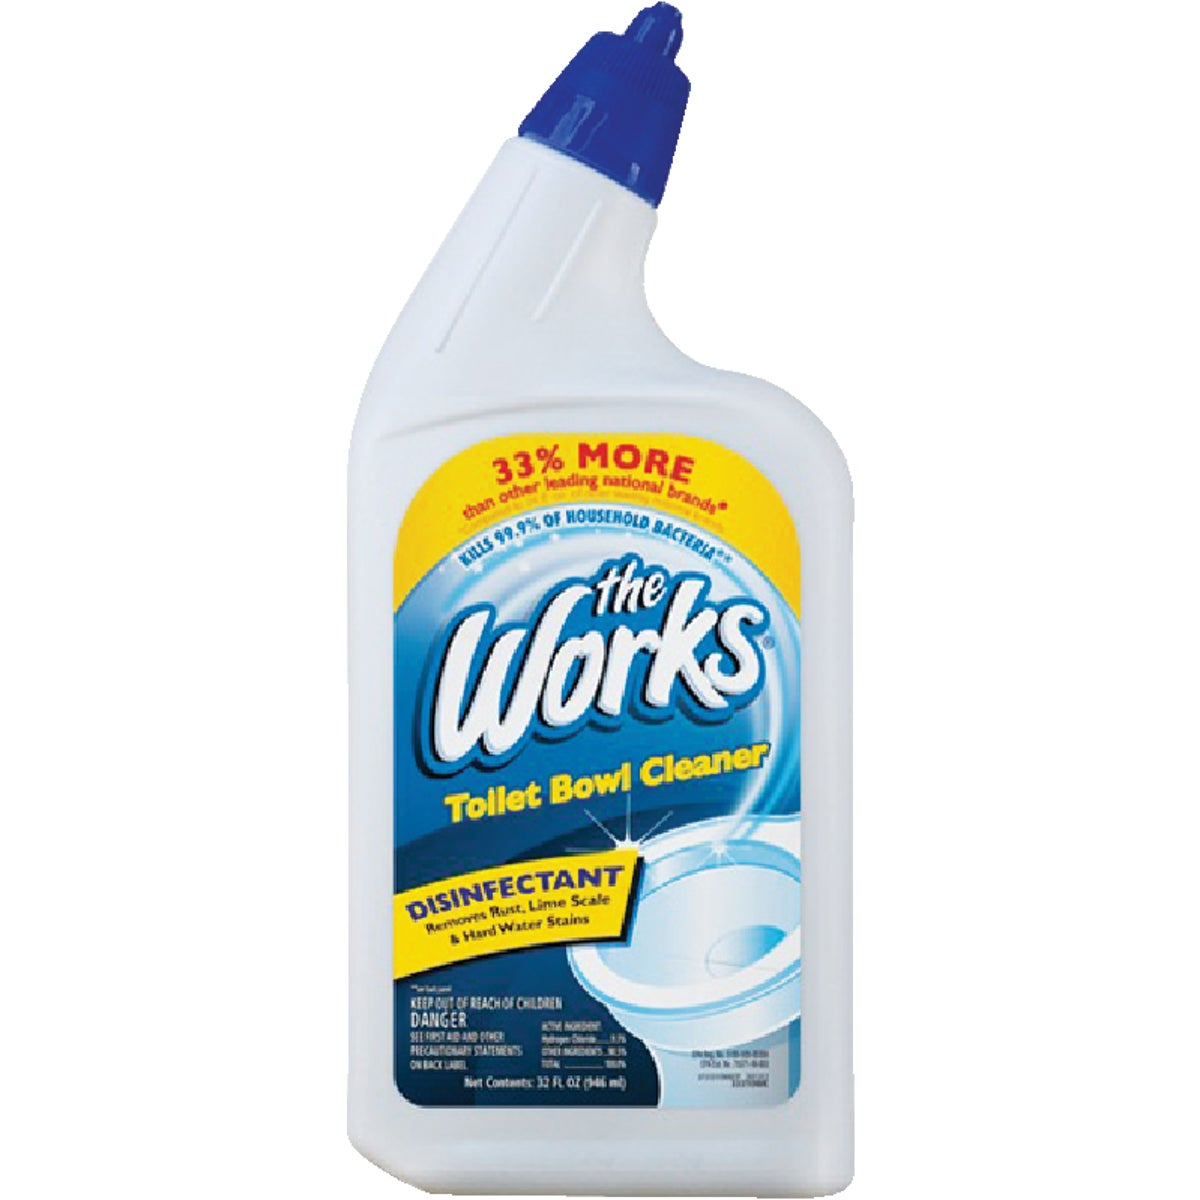 TOILET BOWL CLEANER - 03310 by Homecare Labs/ Works